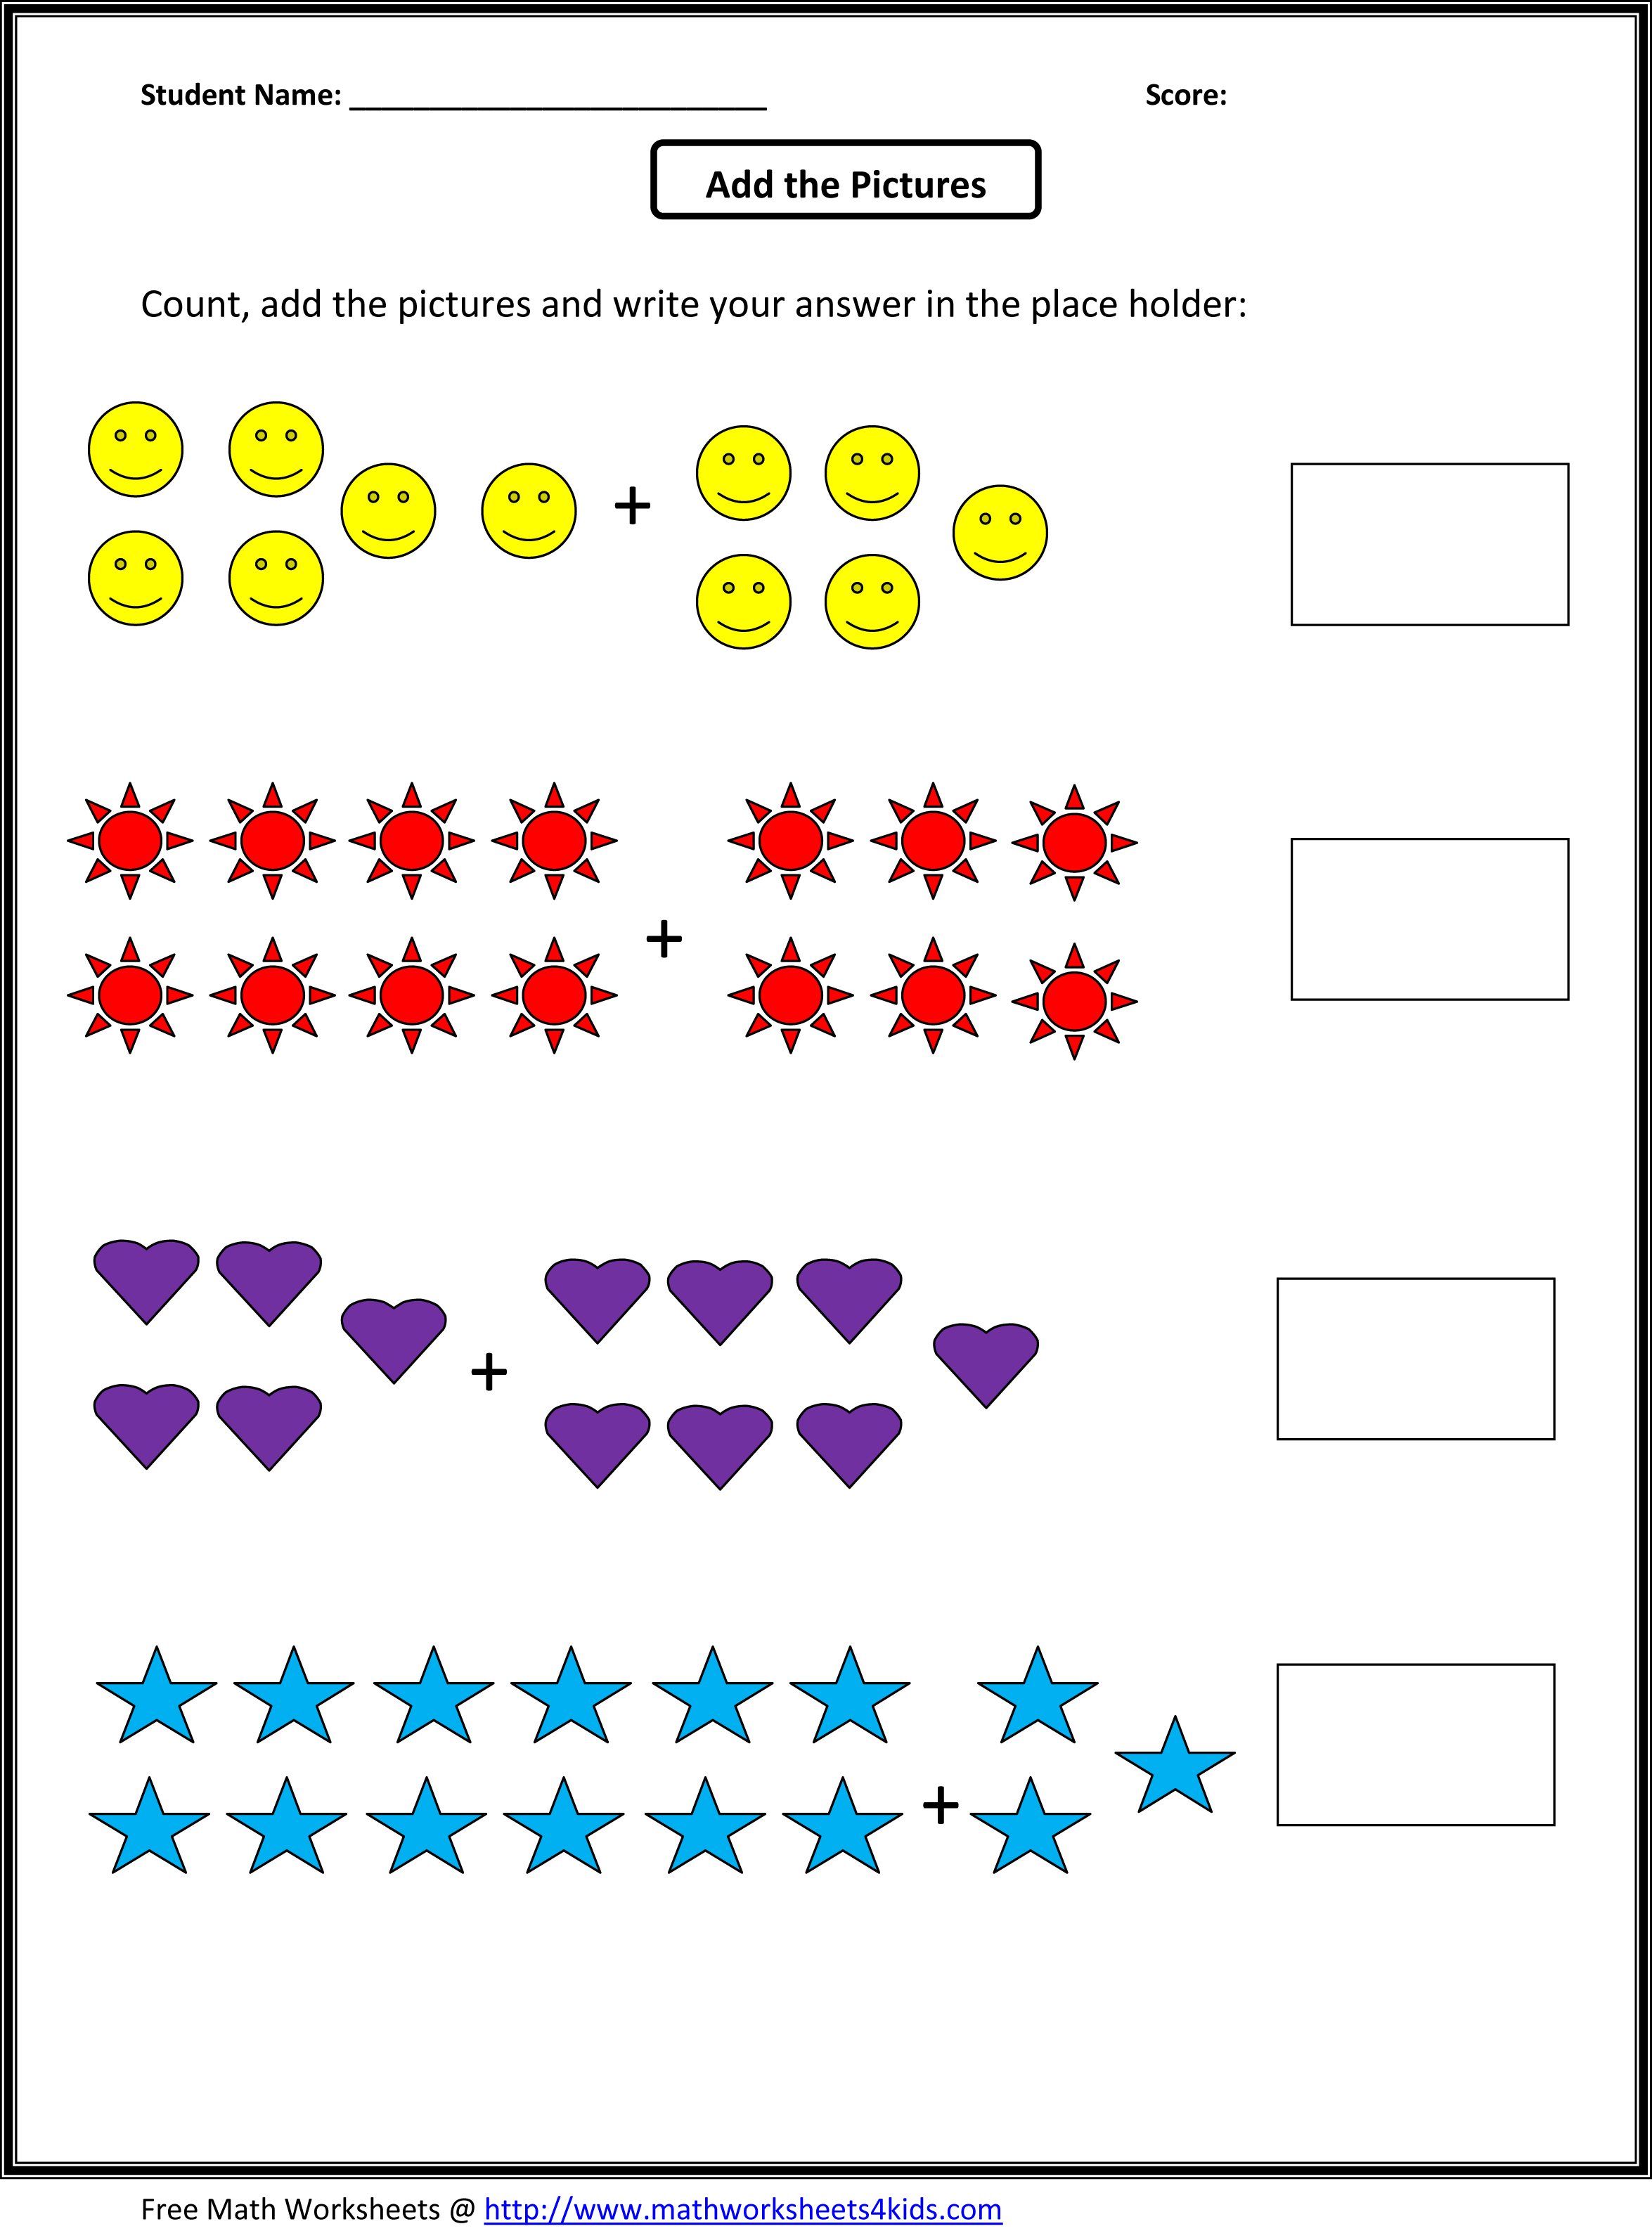 Weirdmailus  Pleasant Grade  Maths Worksheet  Reocurent With Licious Math Worksheets For St Grade Free  Reocurent With Charming Plural Nouns Worksheets Also Complementary And Supplementary Angles Worksheet In Addition Budget Worksheet Excel And Letter H Worksheets As Well As Inverses Of Functions Worksheet Additionally The Organization Of Congress Chapter  Worksheet Answers From Reocurentcom With Weirdmailus  Licious Grade  Maths Worksheet  Reocurent With Charming Math Worksheets For St Grade Free  Reocurent And Pleasant Plural Nouns Worksheets Also Complementary And Supplementary Angles Worksheet In Addition Budget Worksheet Excel From Reocurentcom